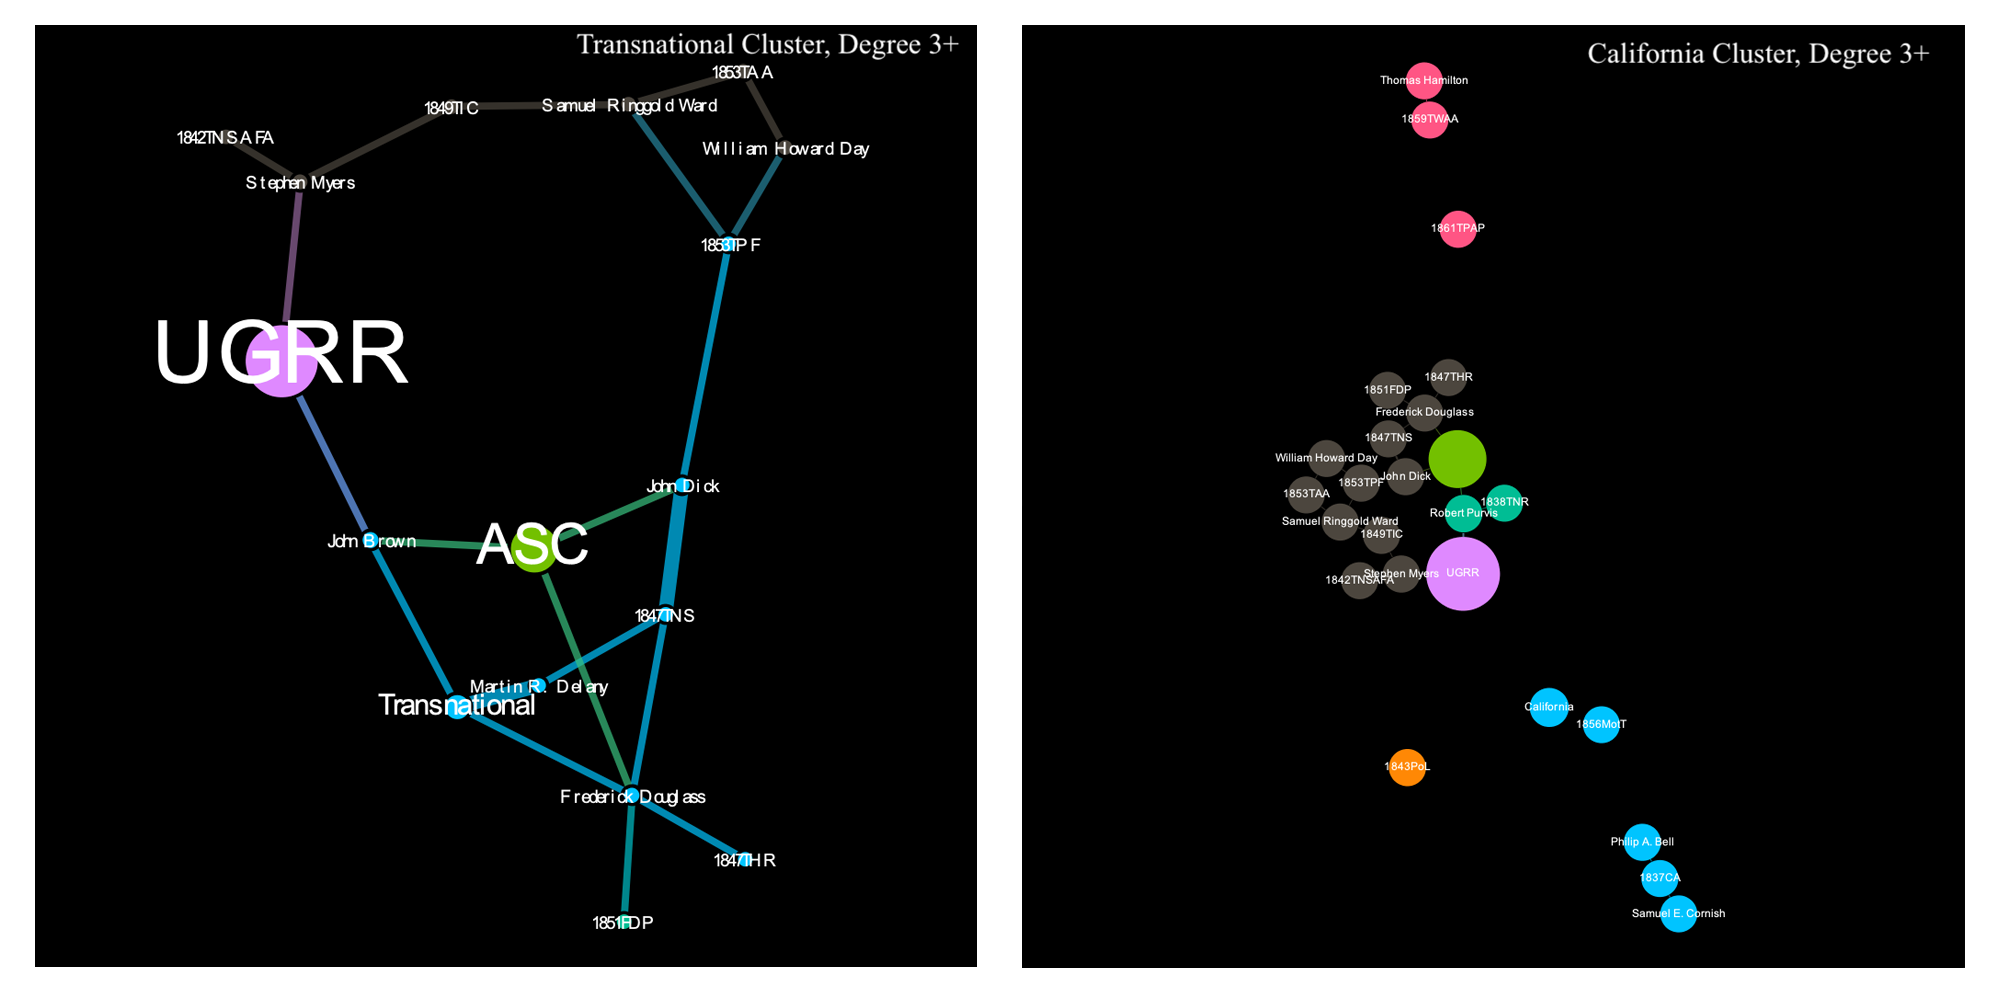 Two newtwork graphs of the transnational and California culsters, filtered to show entities with 3+ links.